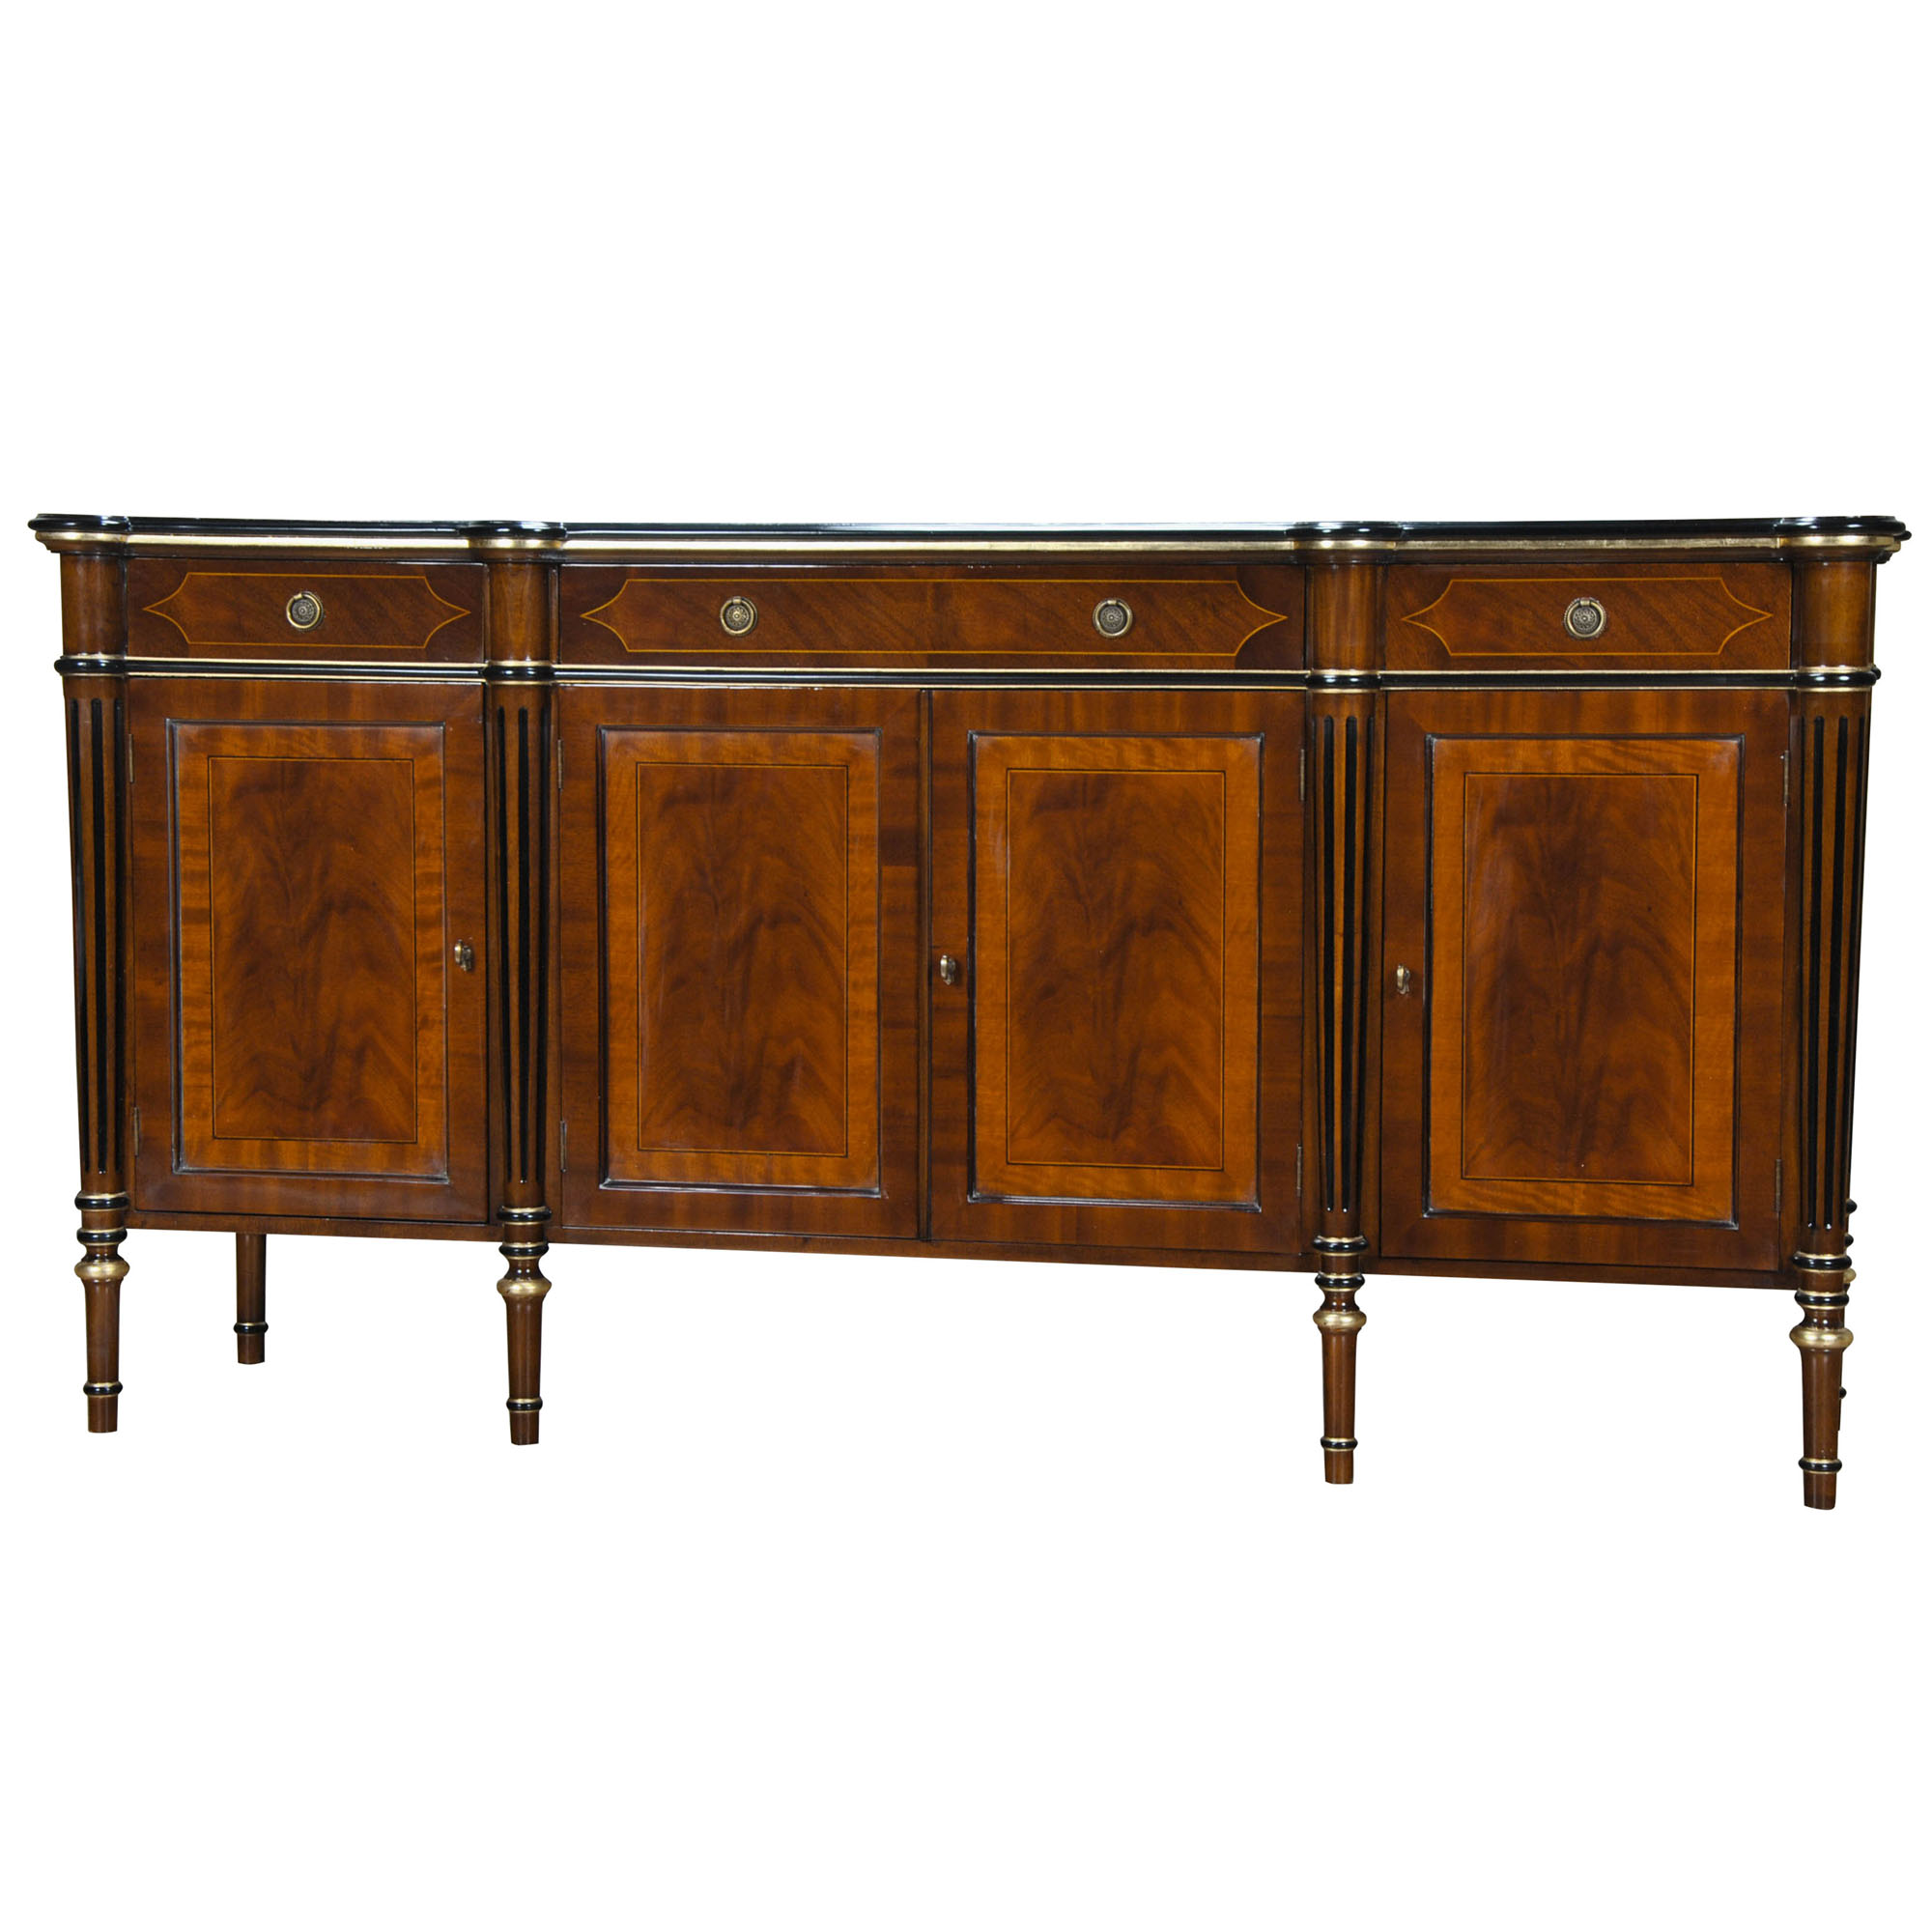 Regency Banded Mahogany Sideboard Niagara Furniture Regency Sideboard